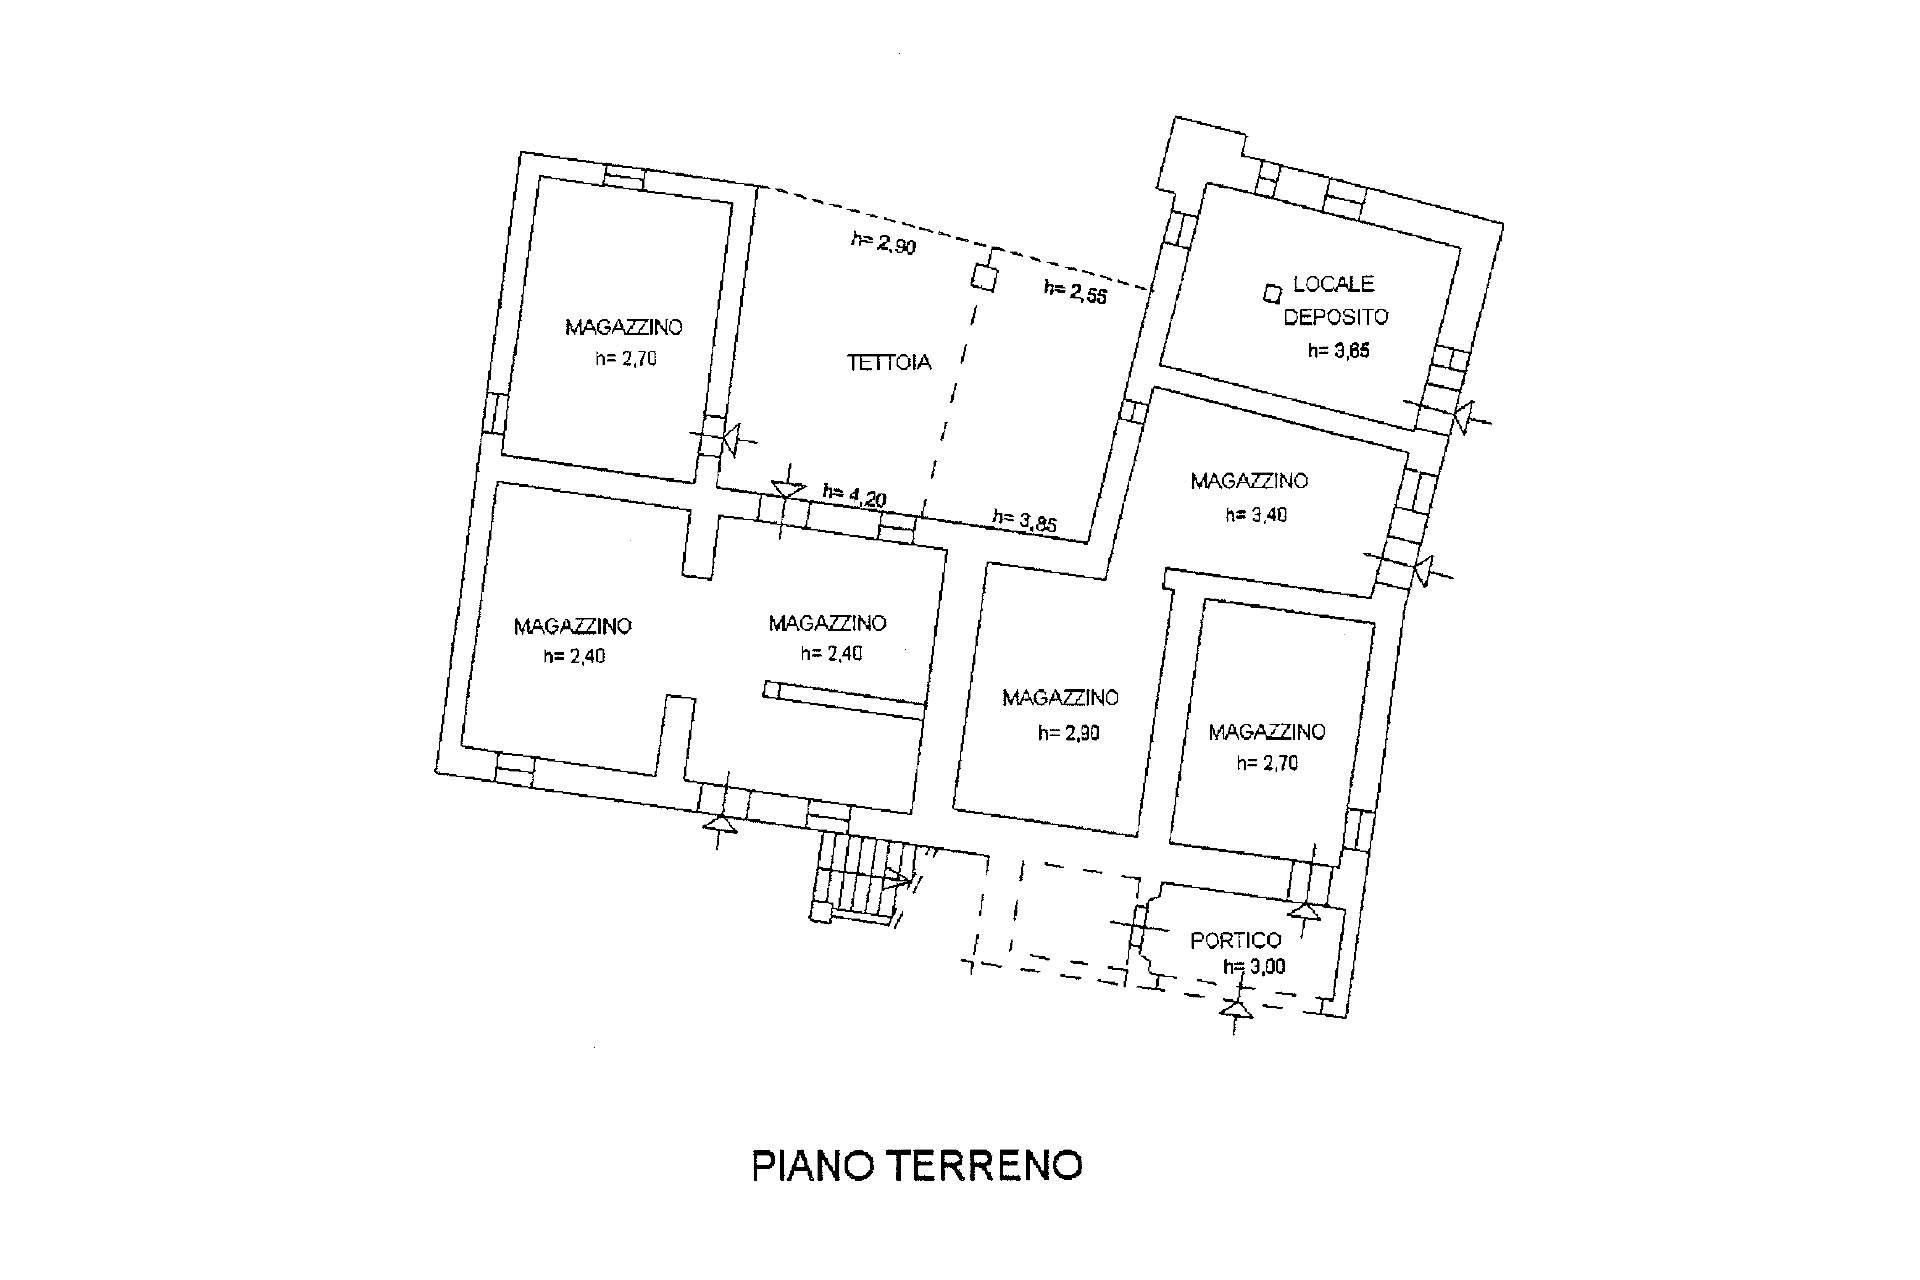 Planimetria piano terreno